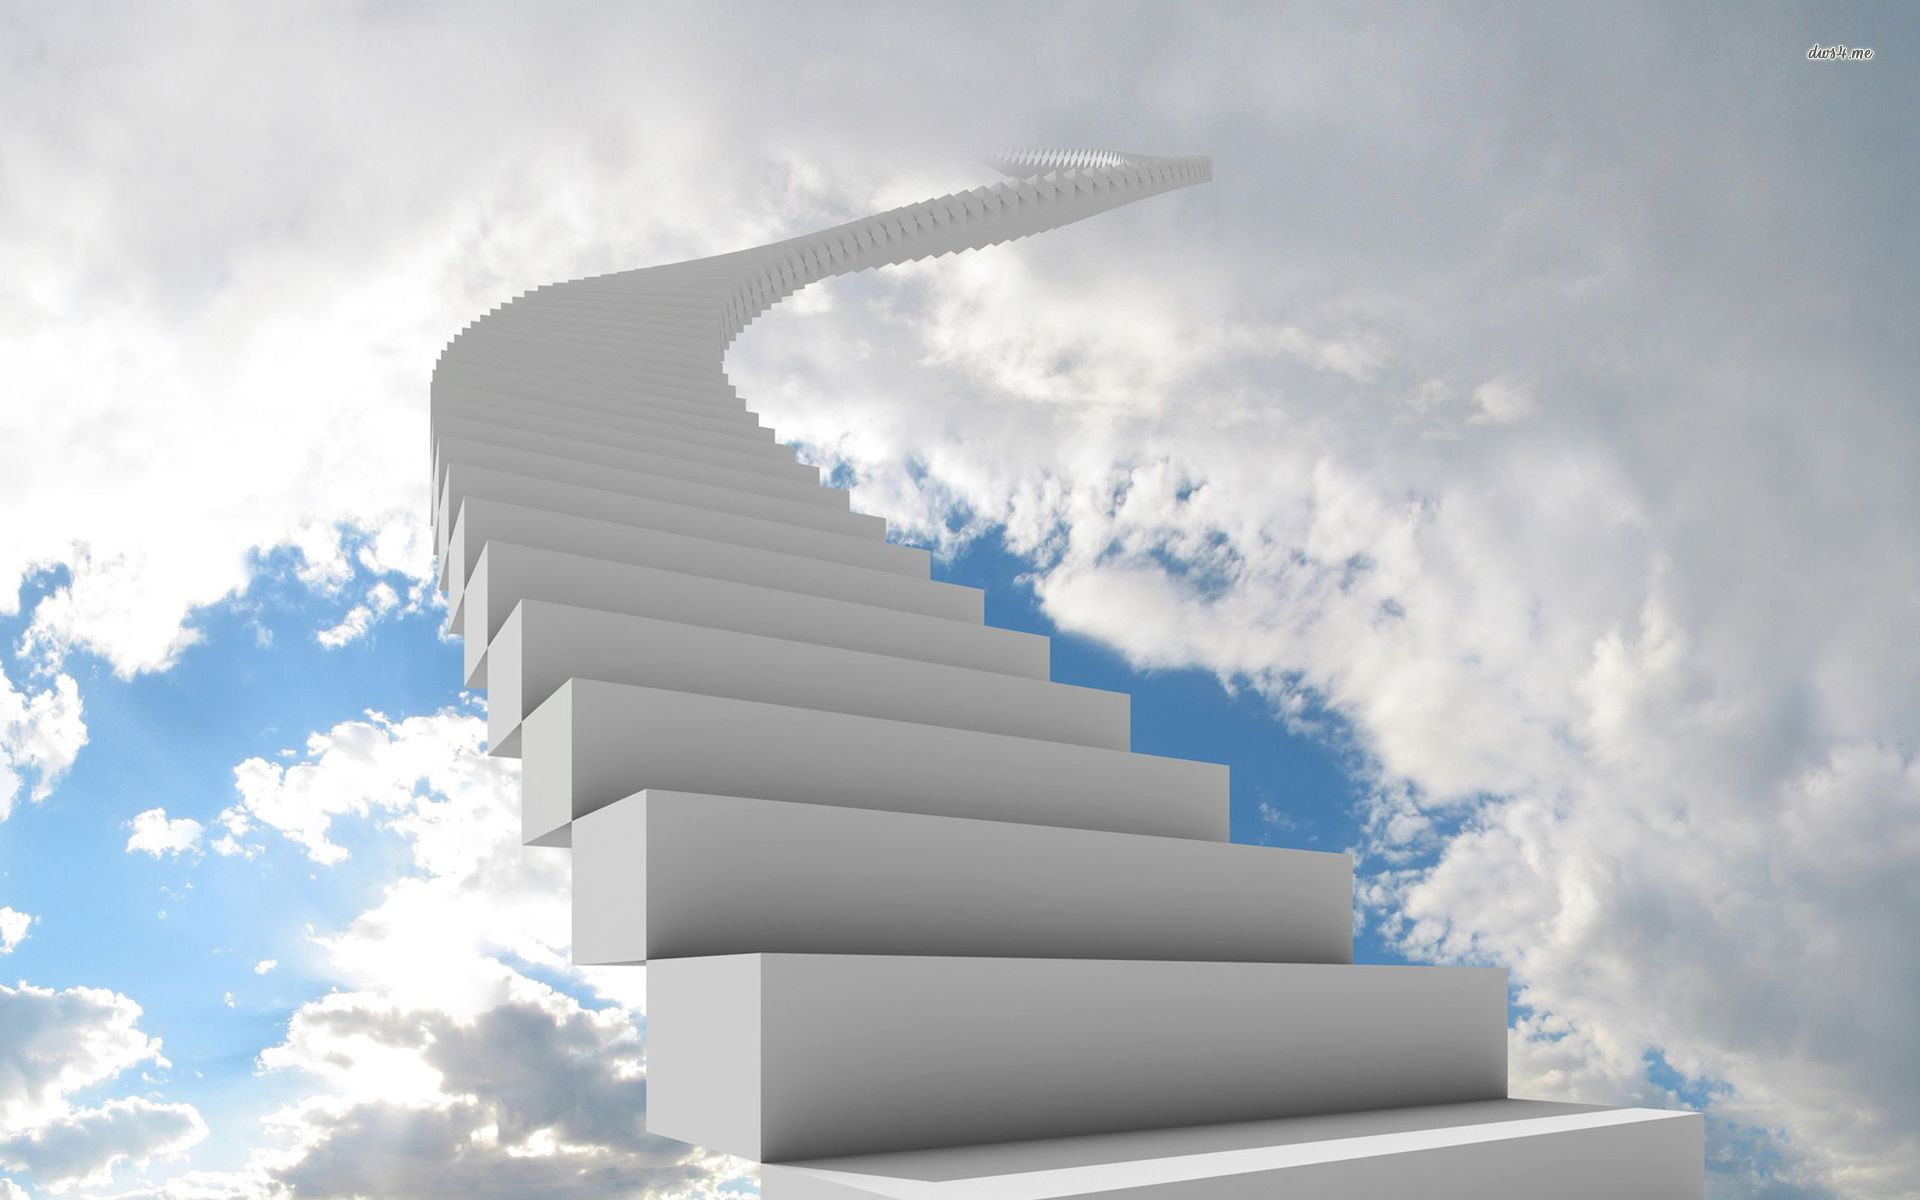 White Staircase Lost In The Fluffy Clouds Hd Wallpaper Stairway To Heaven Heaven Wallpaper Stairs To Heaven